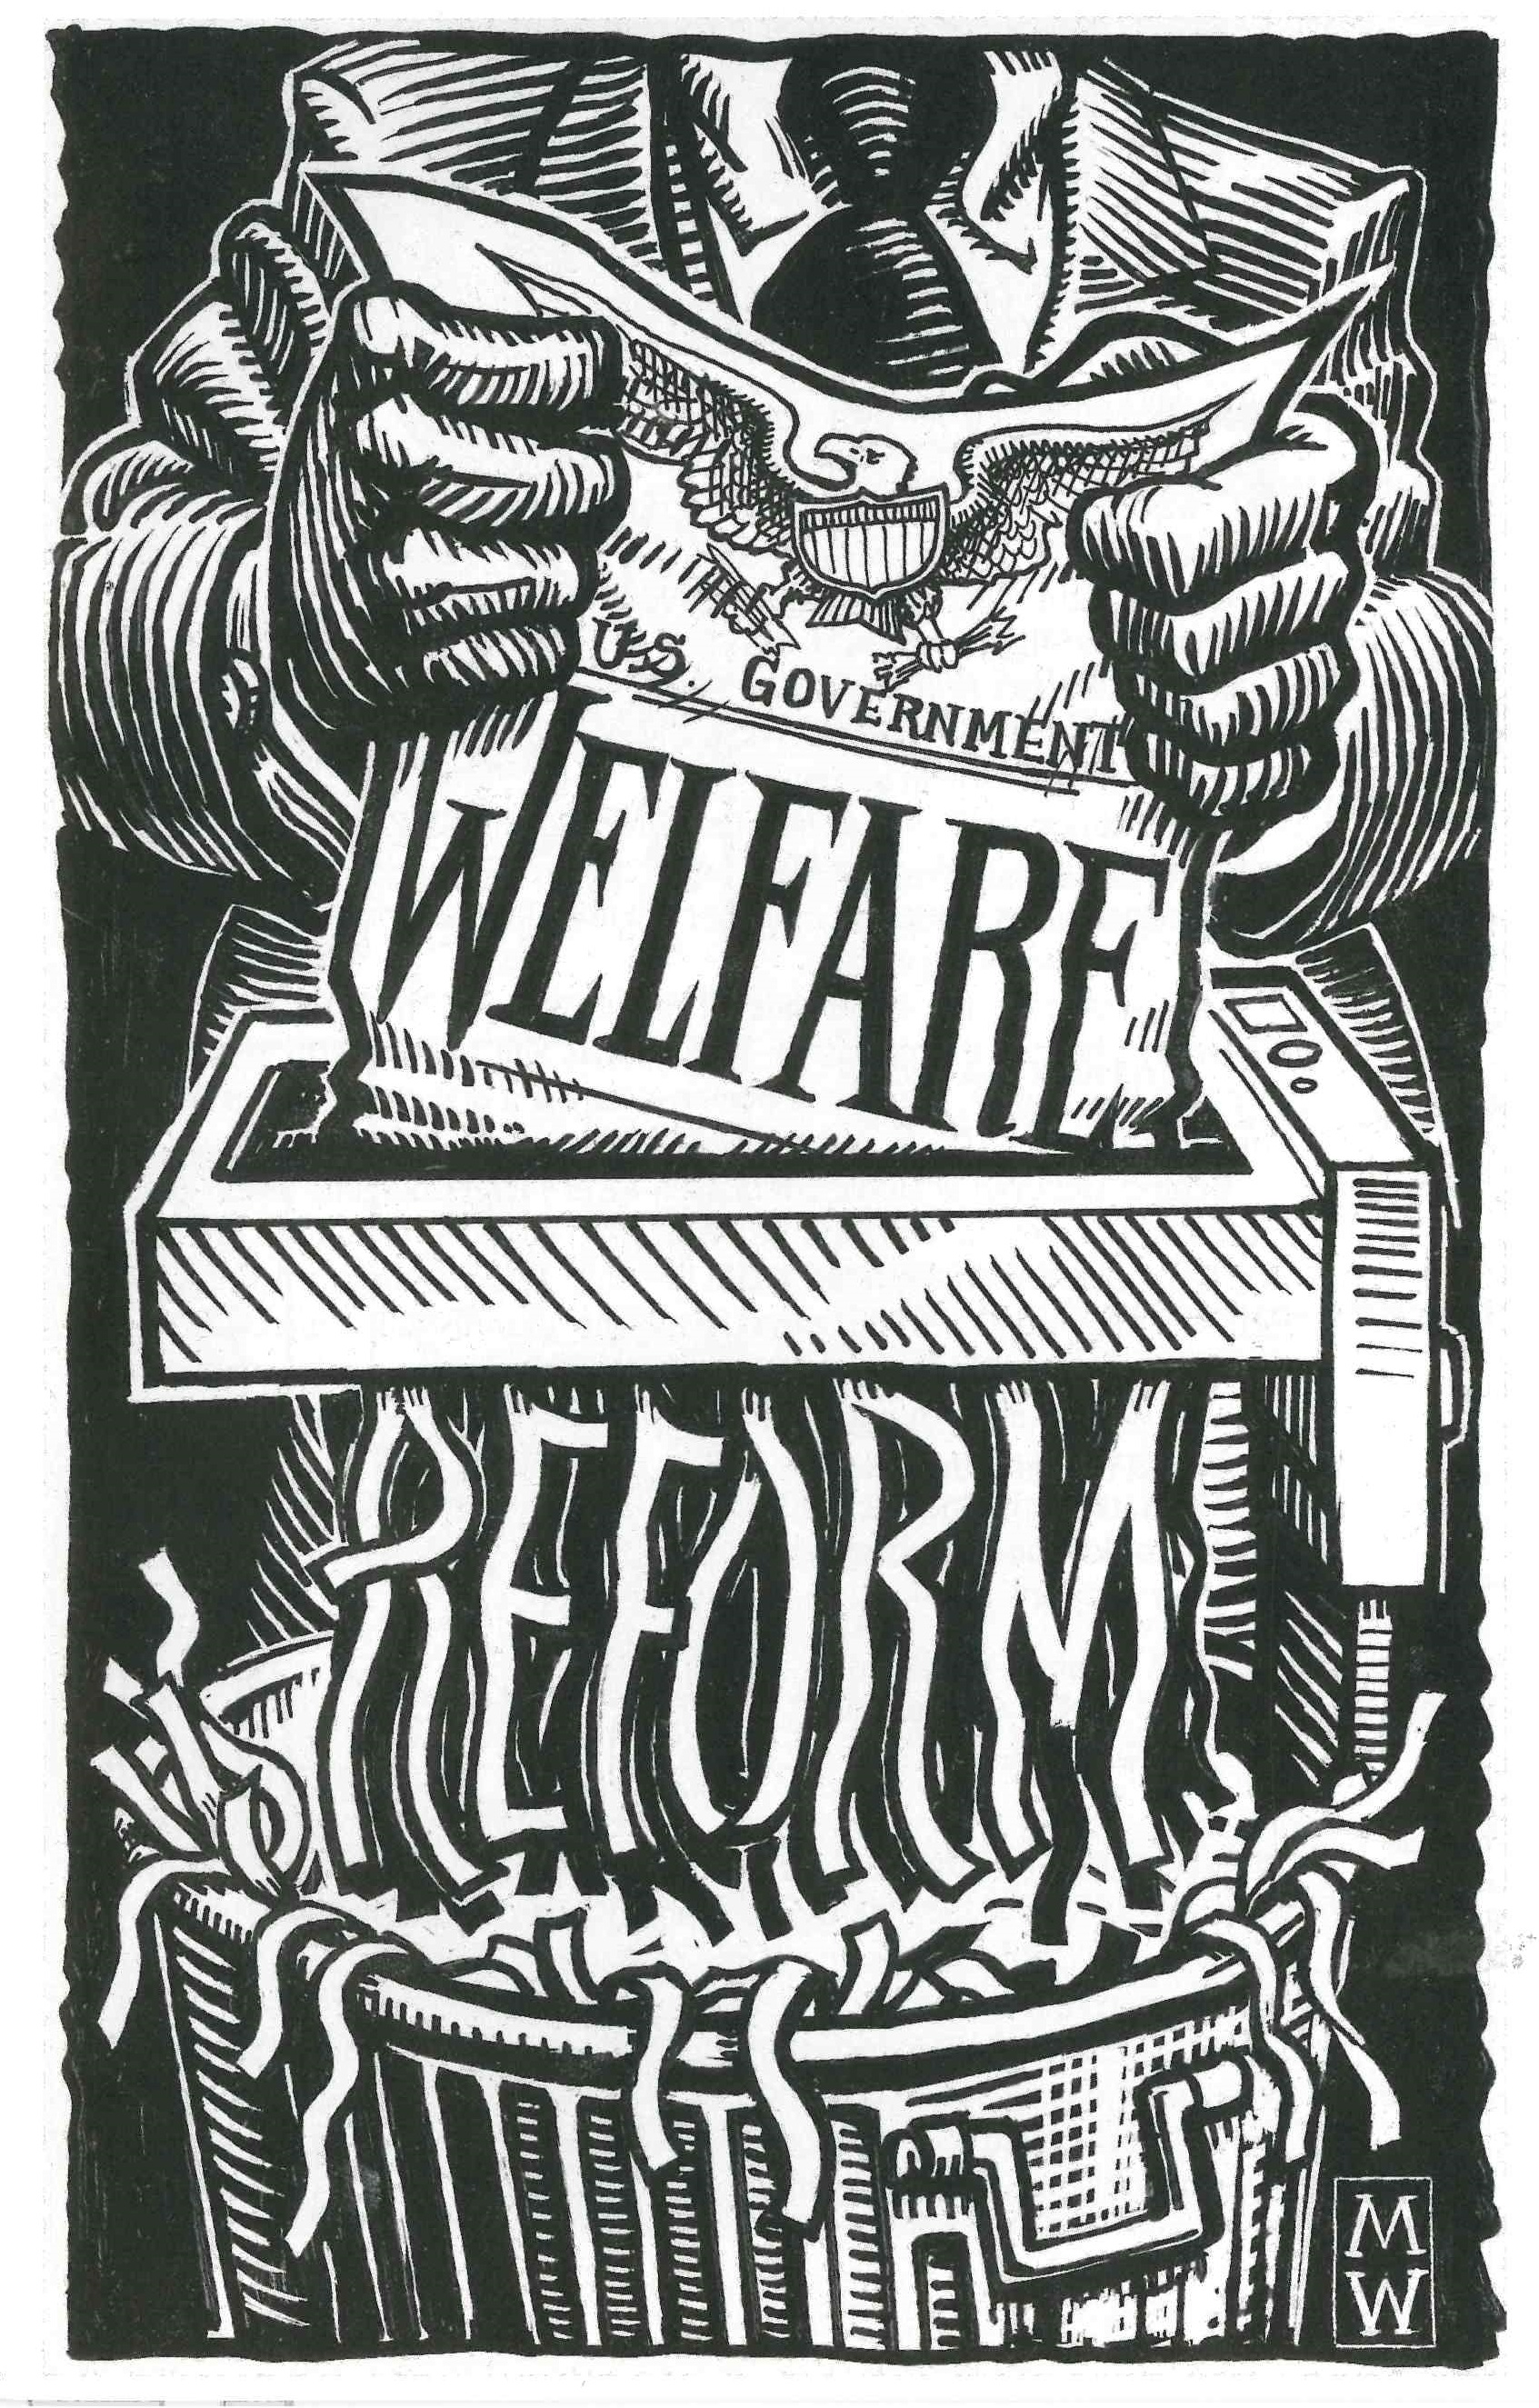 Felicia Kornbluh on the Politics of Welfare